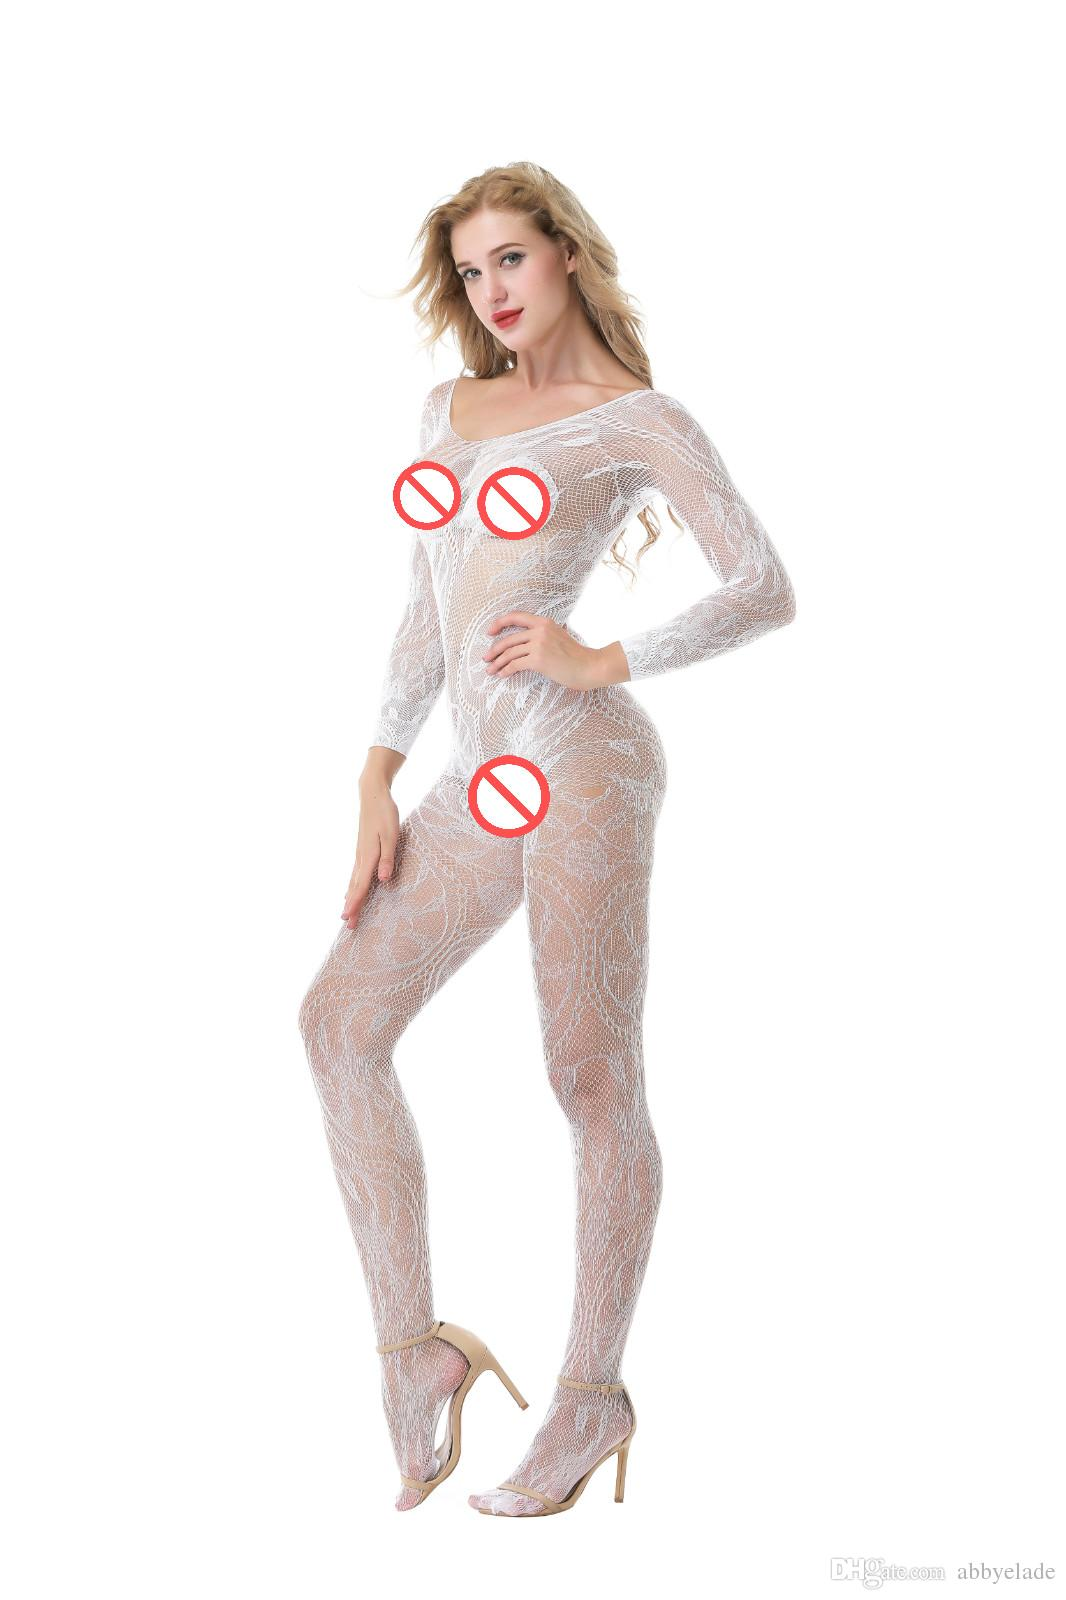 Sous-vêtement Onesie Crotchless Body Big Dragon Jacquard Filets De Pêche Bas Sac Net Temptation Collants Sexy Bas Pyjamas Serrés